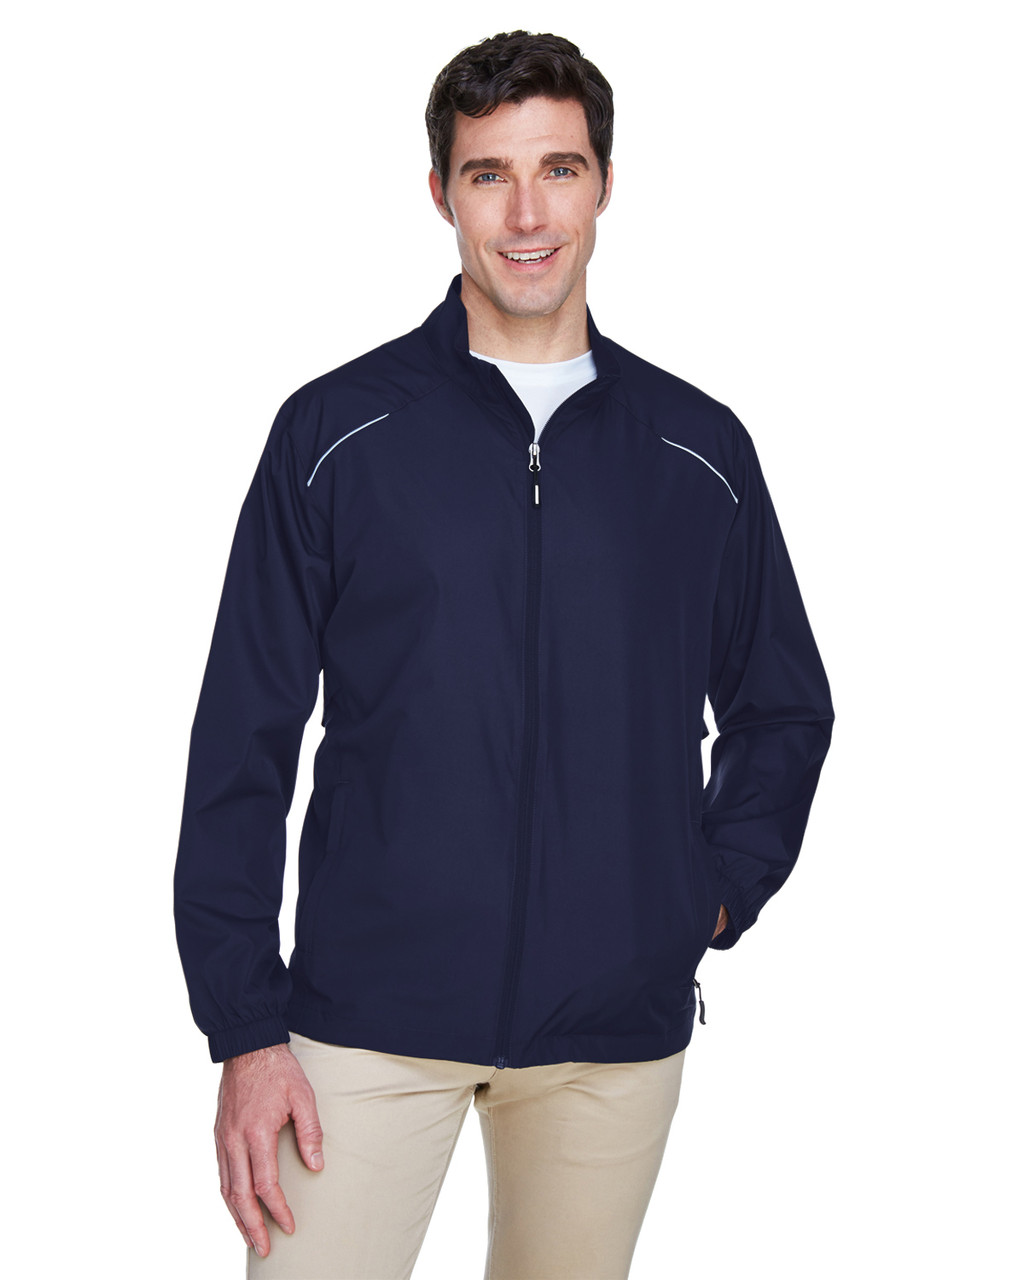 Classic Navy - 88183 Ash City - Core 365 Motivate Unlined Lightweight Jacket | Blankclothing.ca